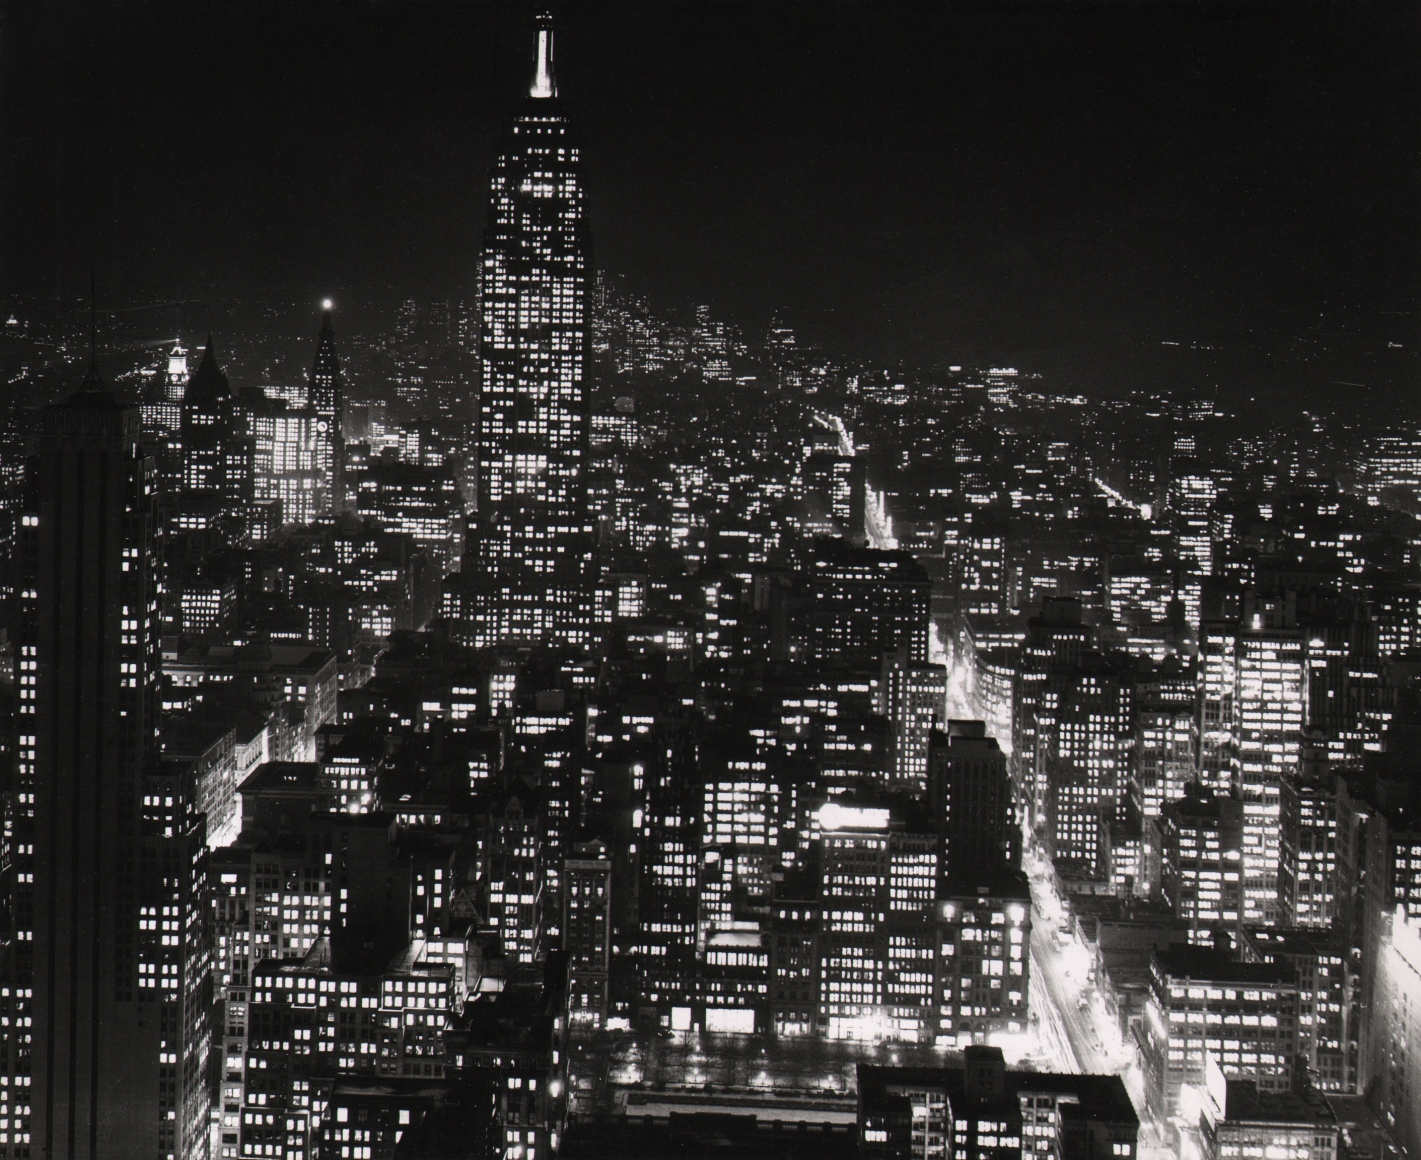 32. Sheldon Hine, New York City at Night Atop Radio City, c. 1938. Nighttime cityscape in a horizontal composition with the Empire State in the top left quadrant of the frame.